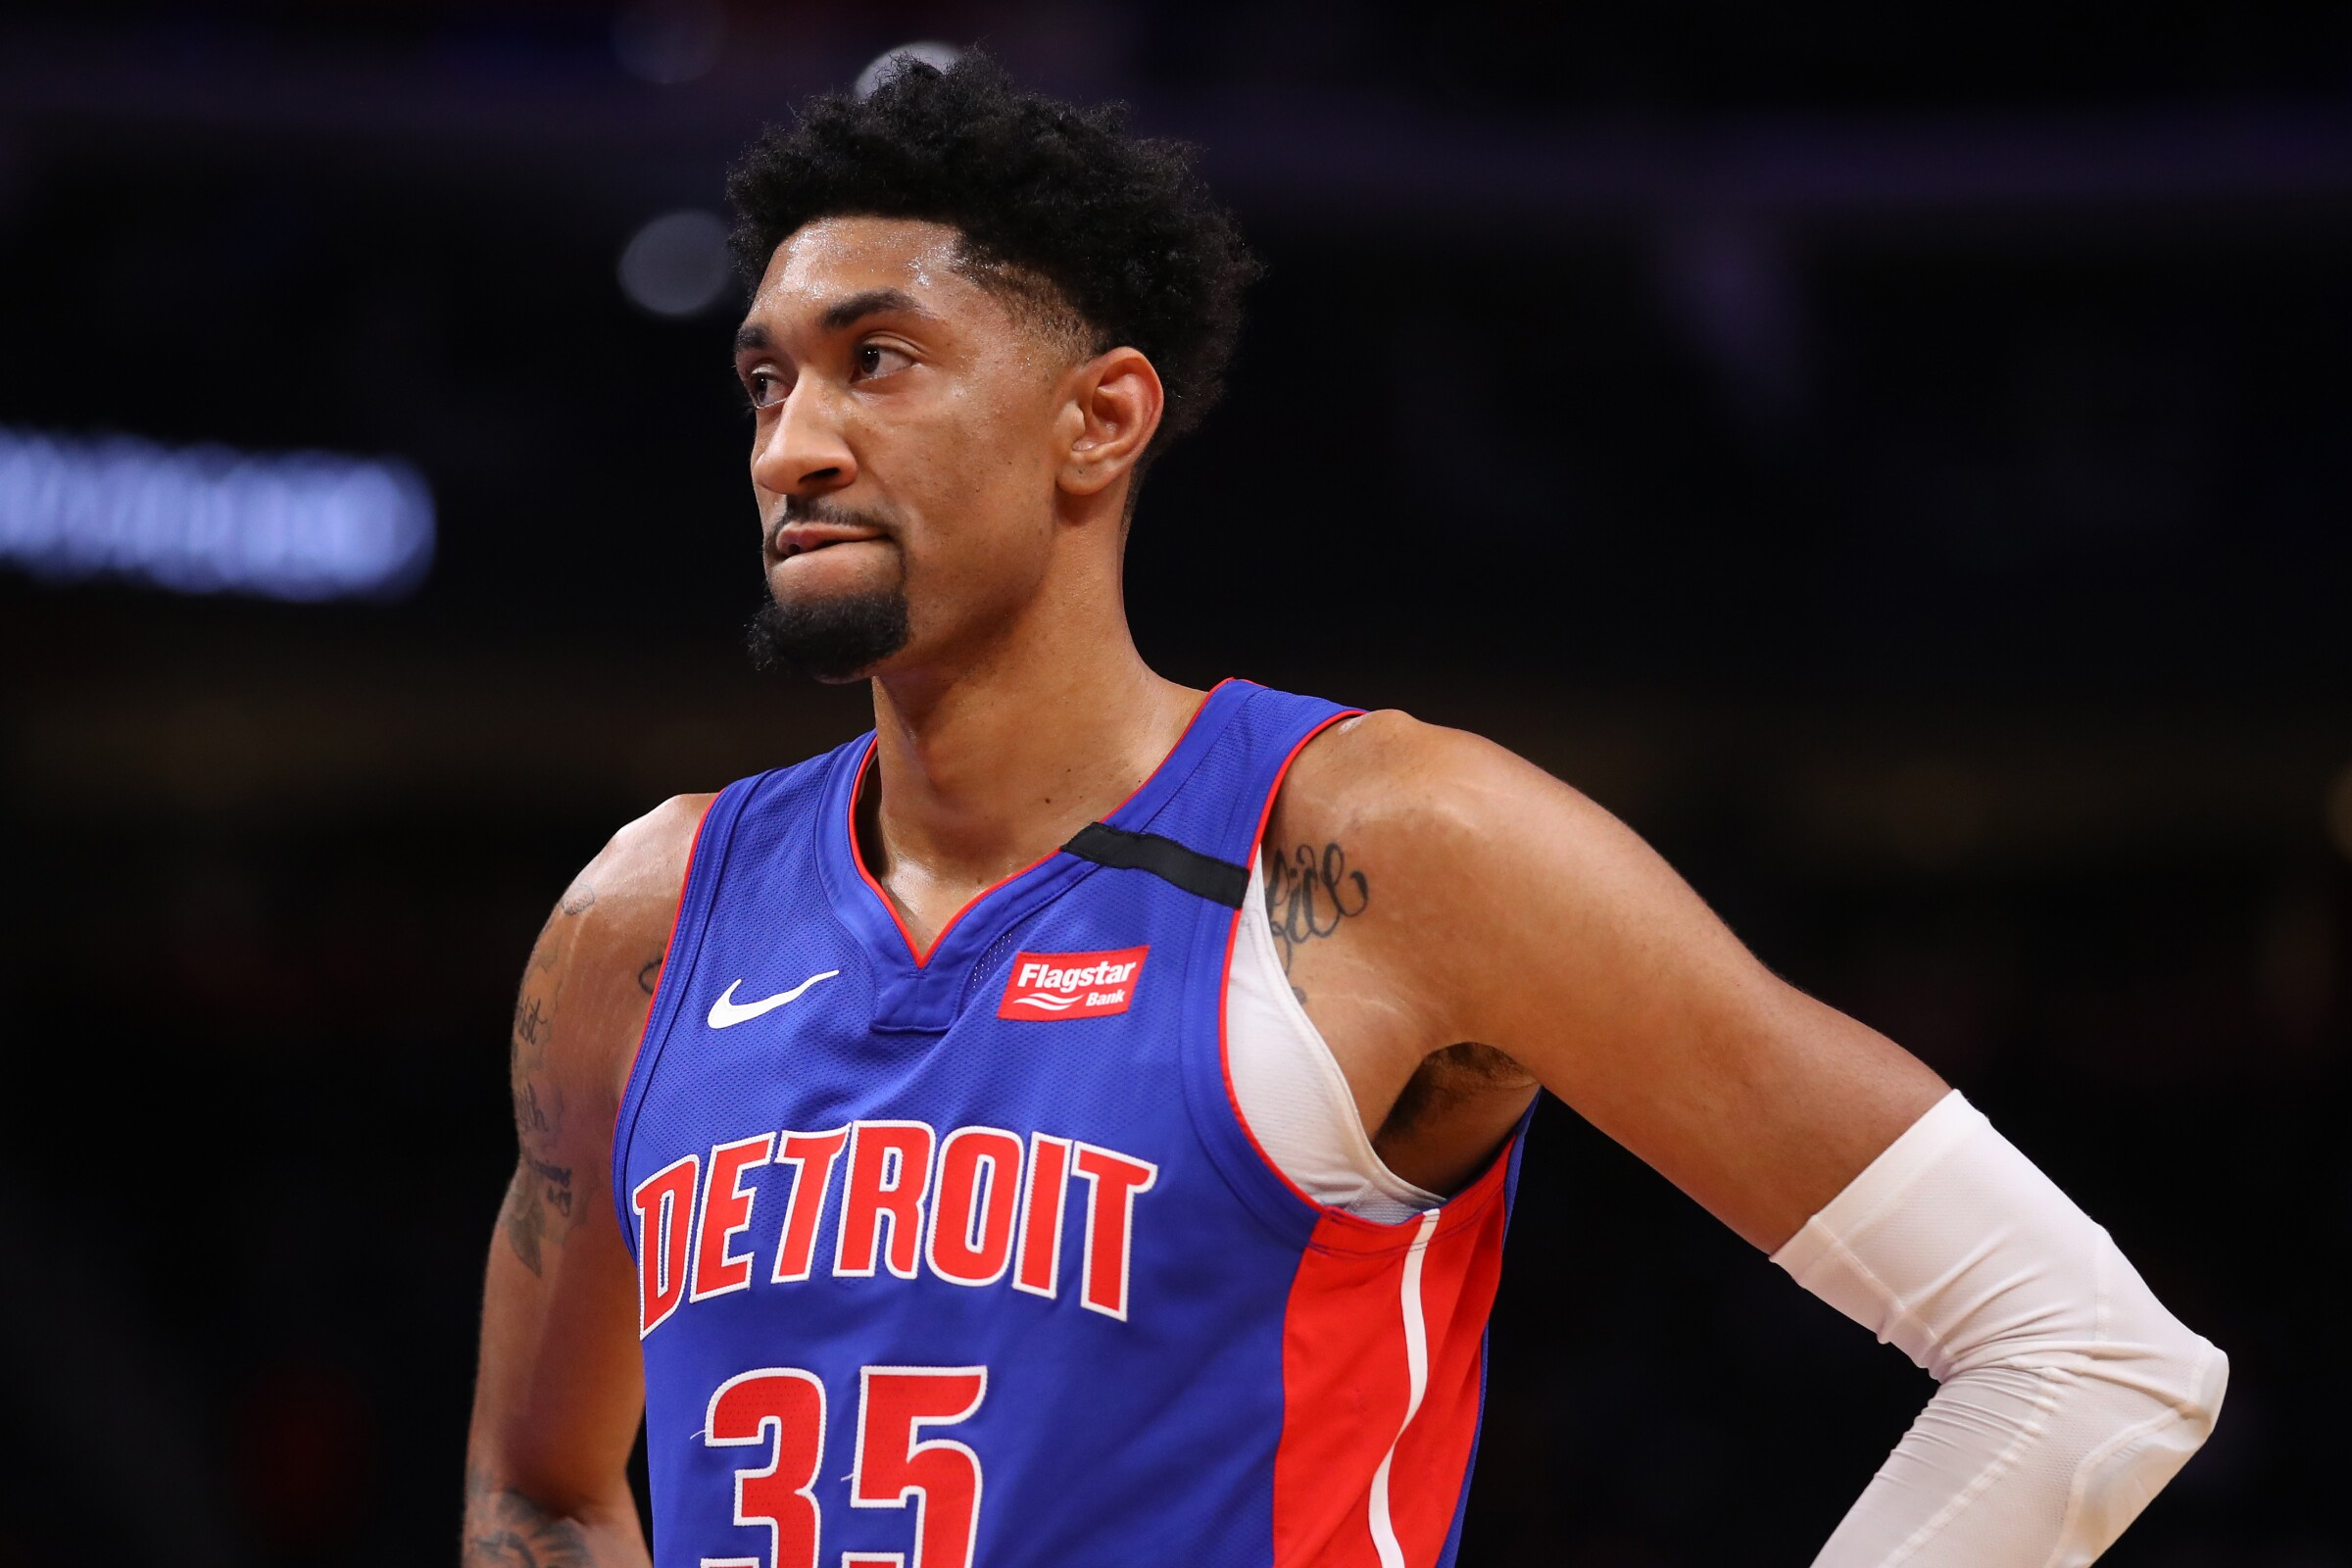 Detroit Pistons forward Christian Wood is among the athletes from around the world who have tested positive for the coronavirus.